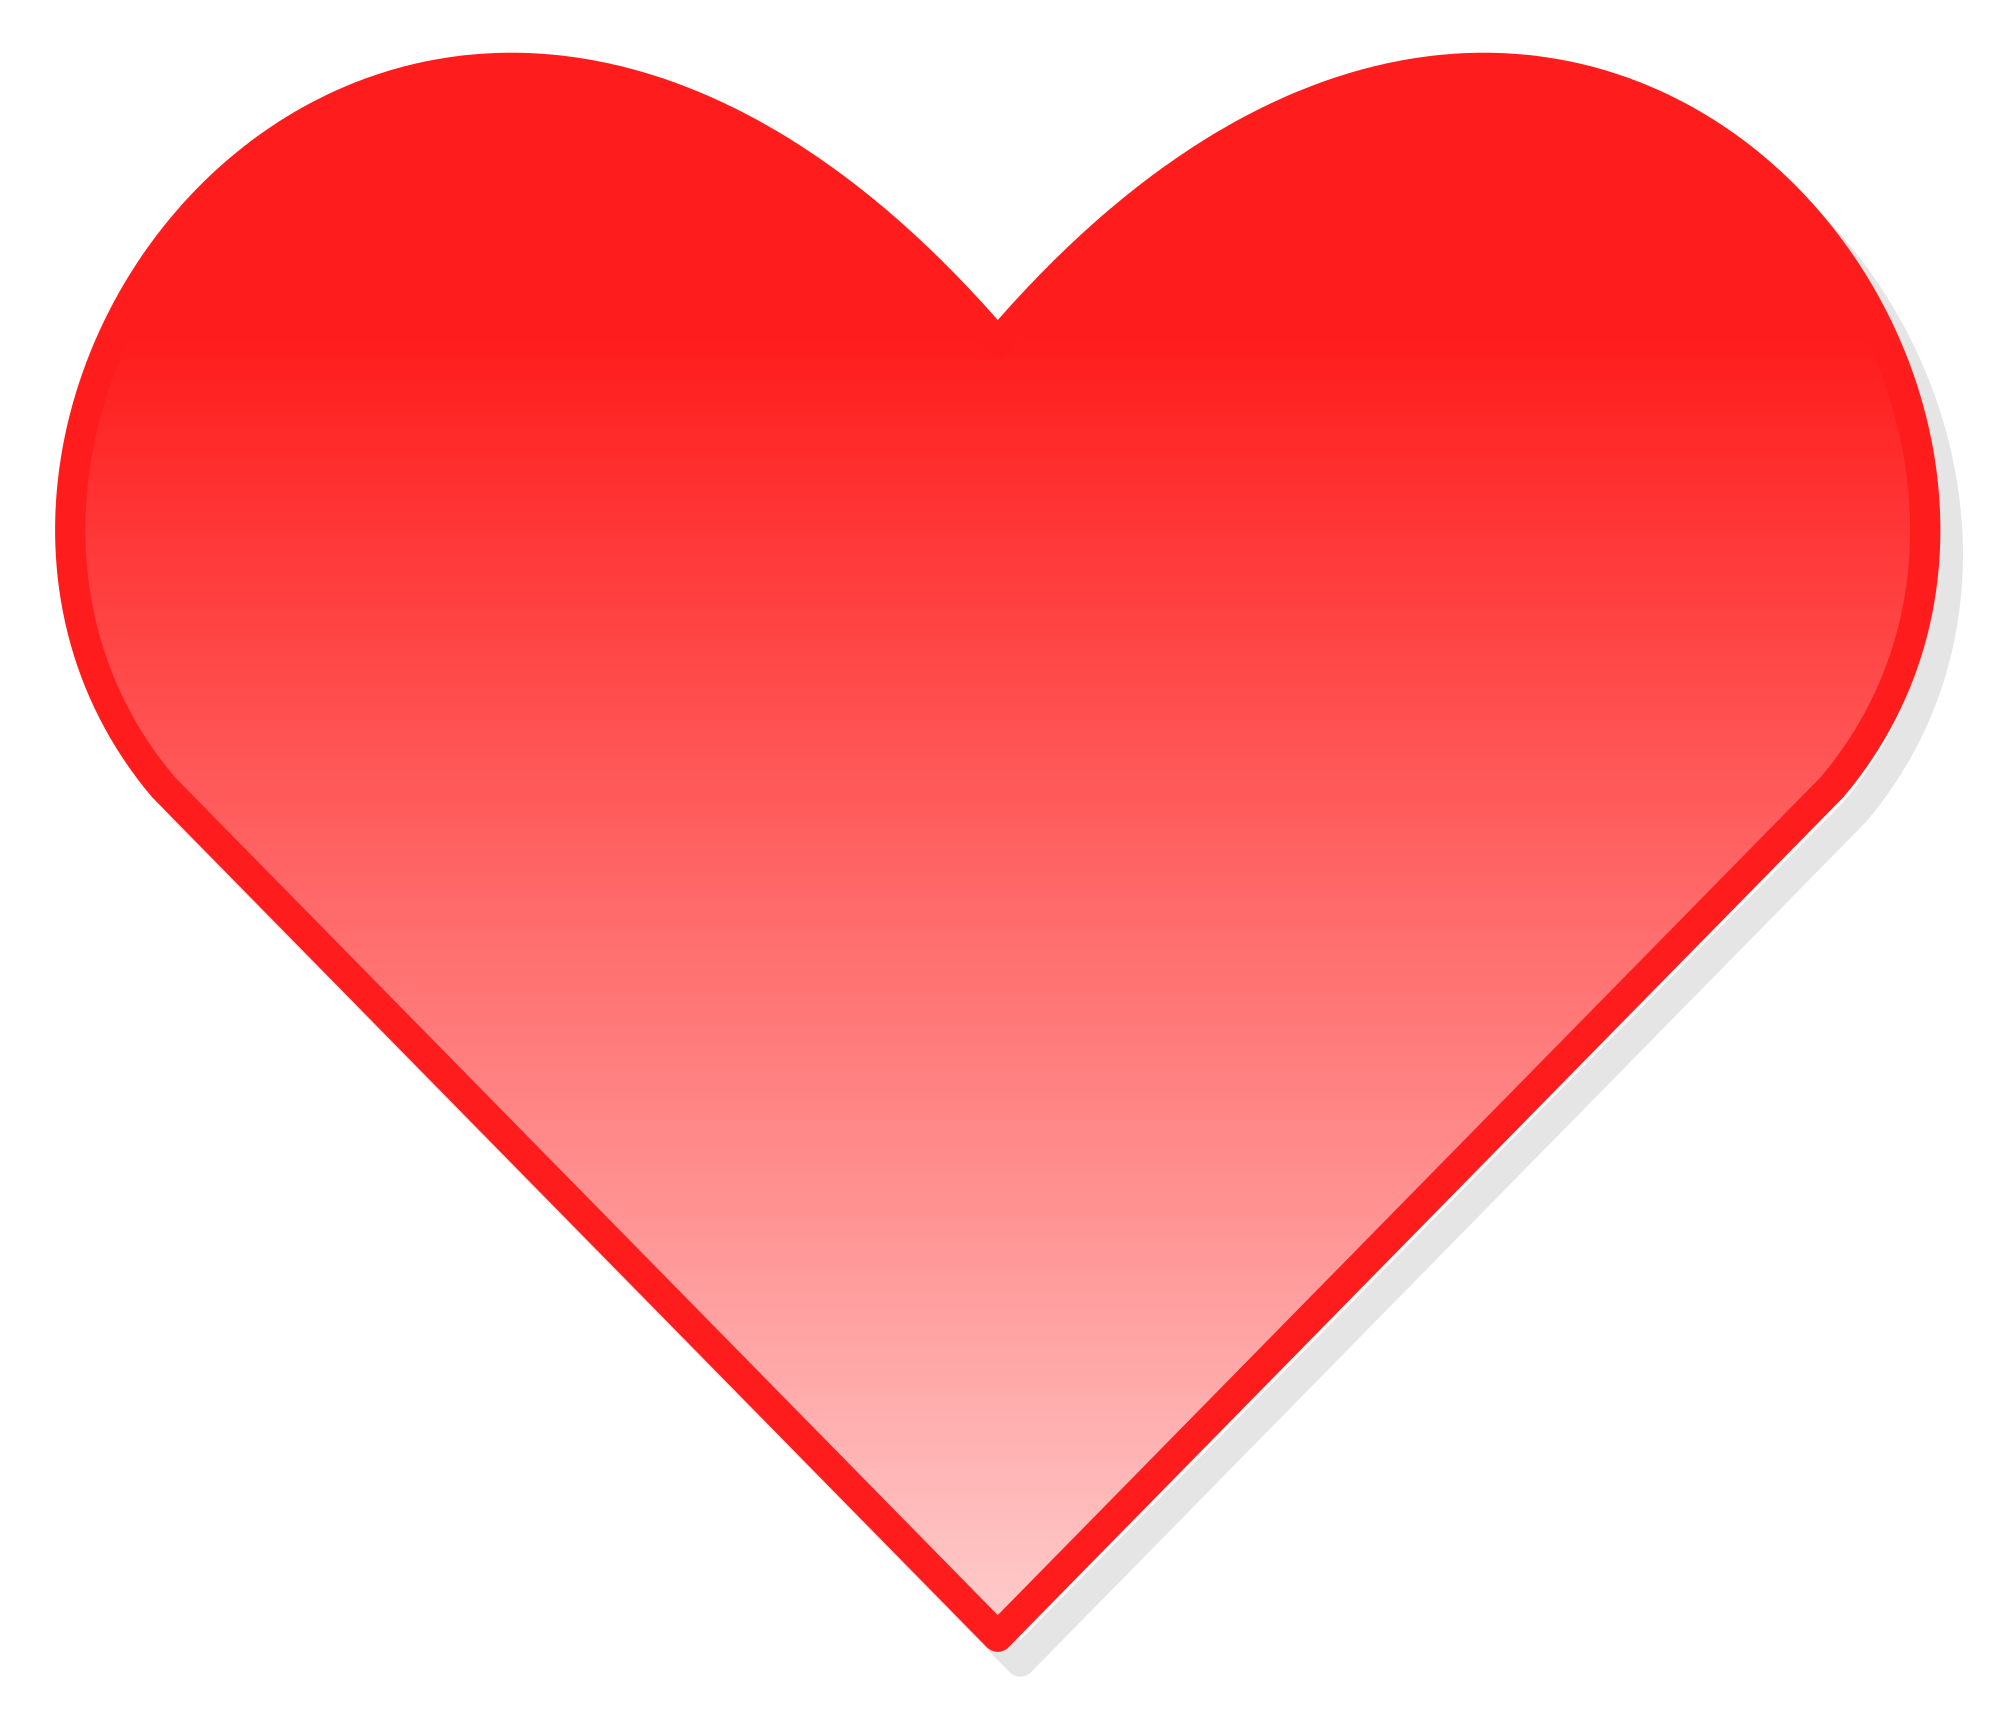 Heart gif png. File drawn svg wikimedia